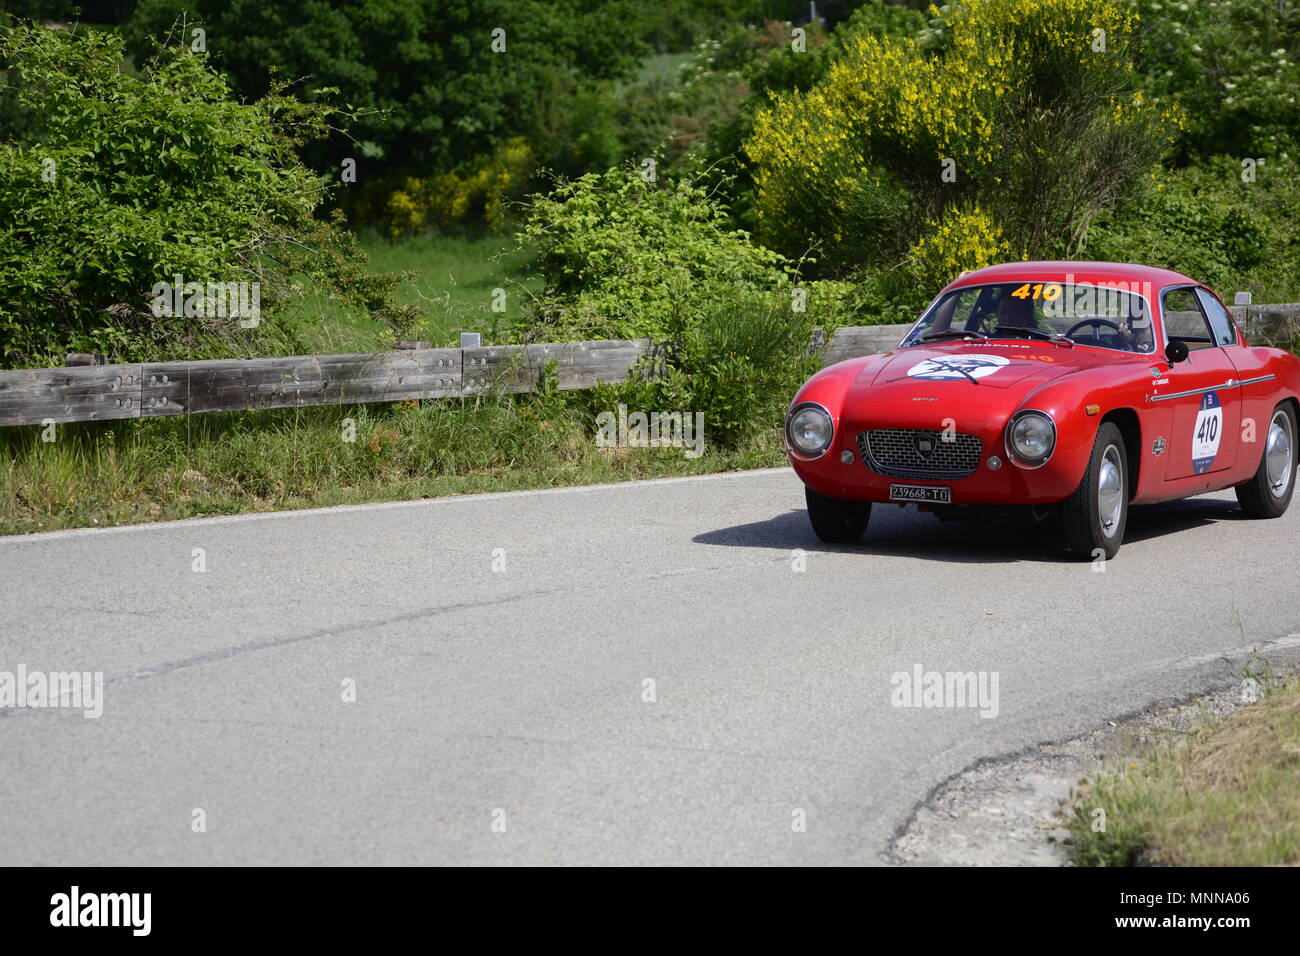 PESARO COLLE SAN BARTOLO , ITALY - MAY 17 - 2018 LANCIA APPIA GTZ	1957 :on an old racing car in rally Mille Miglia 2018 the famous italia - Stock Image